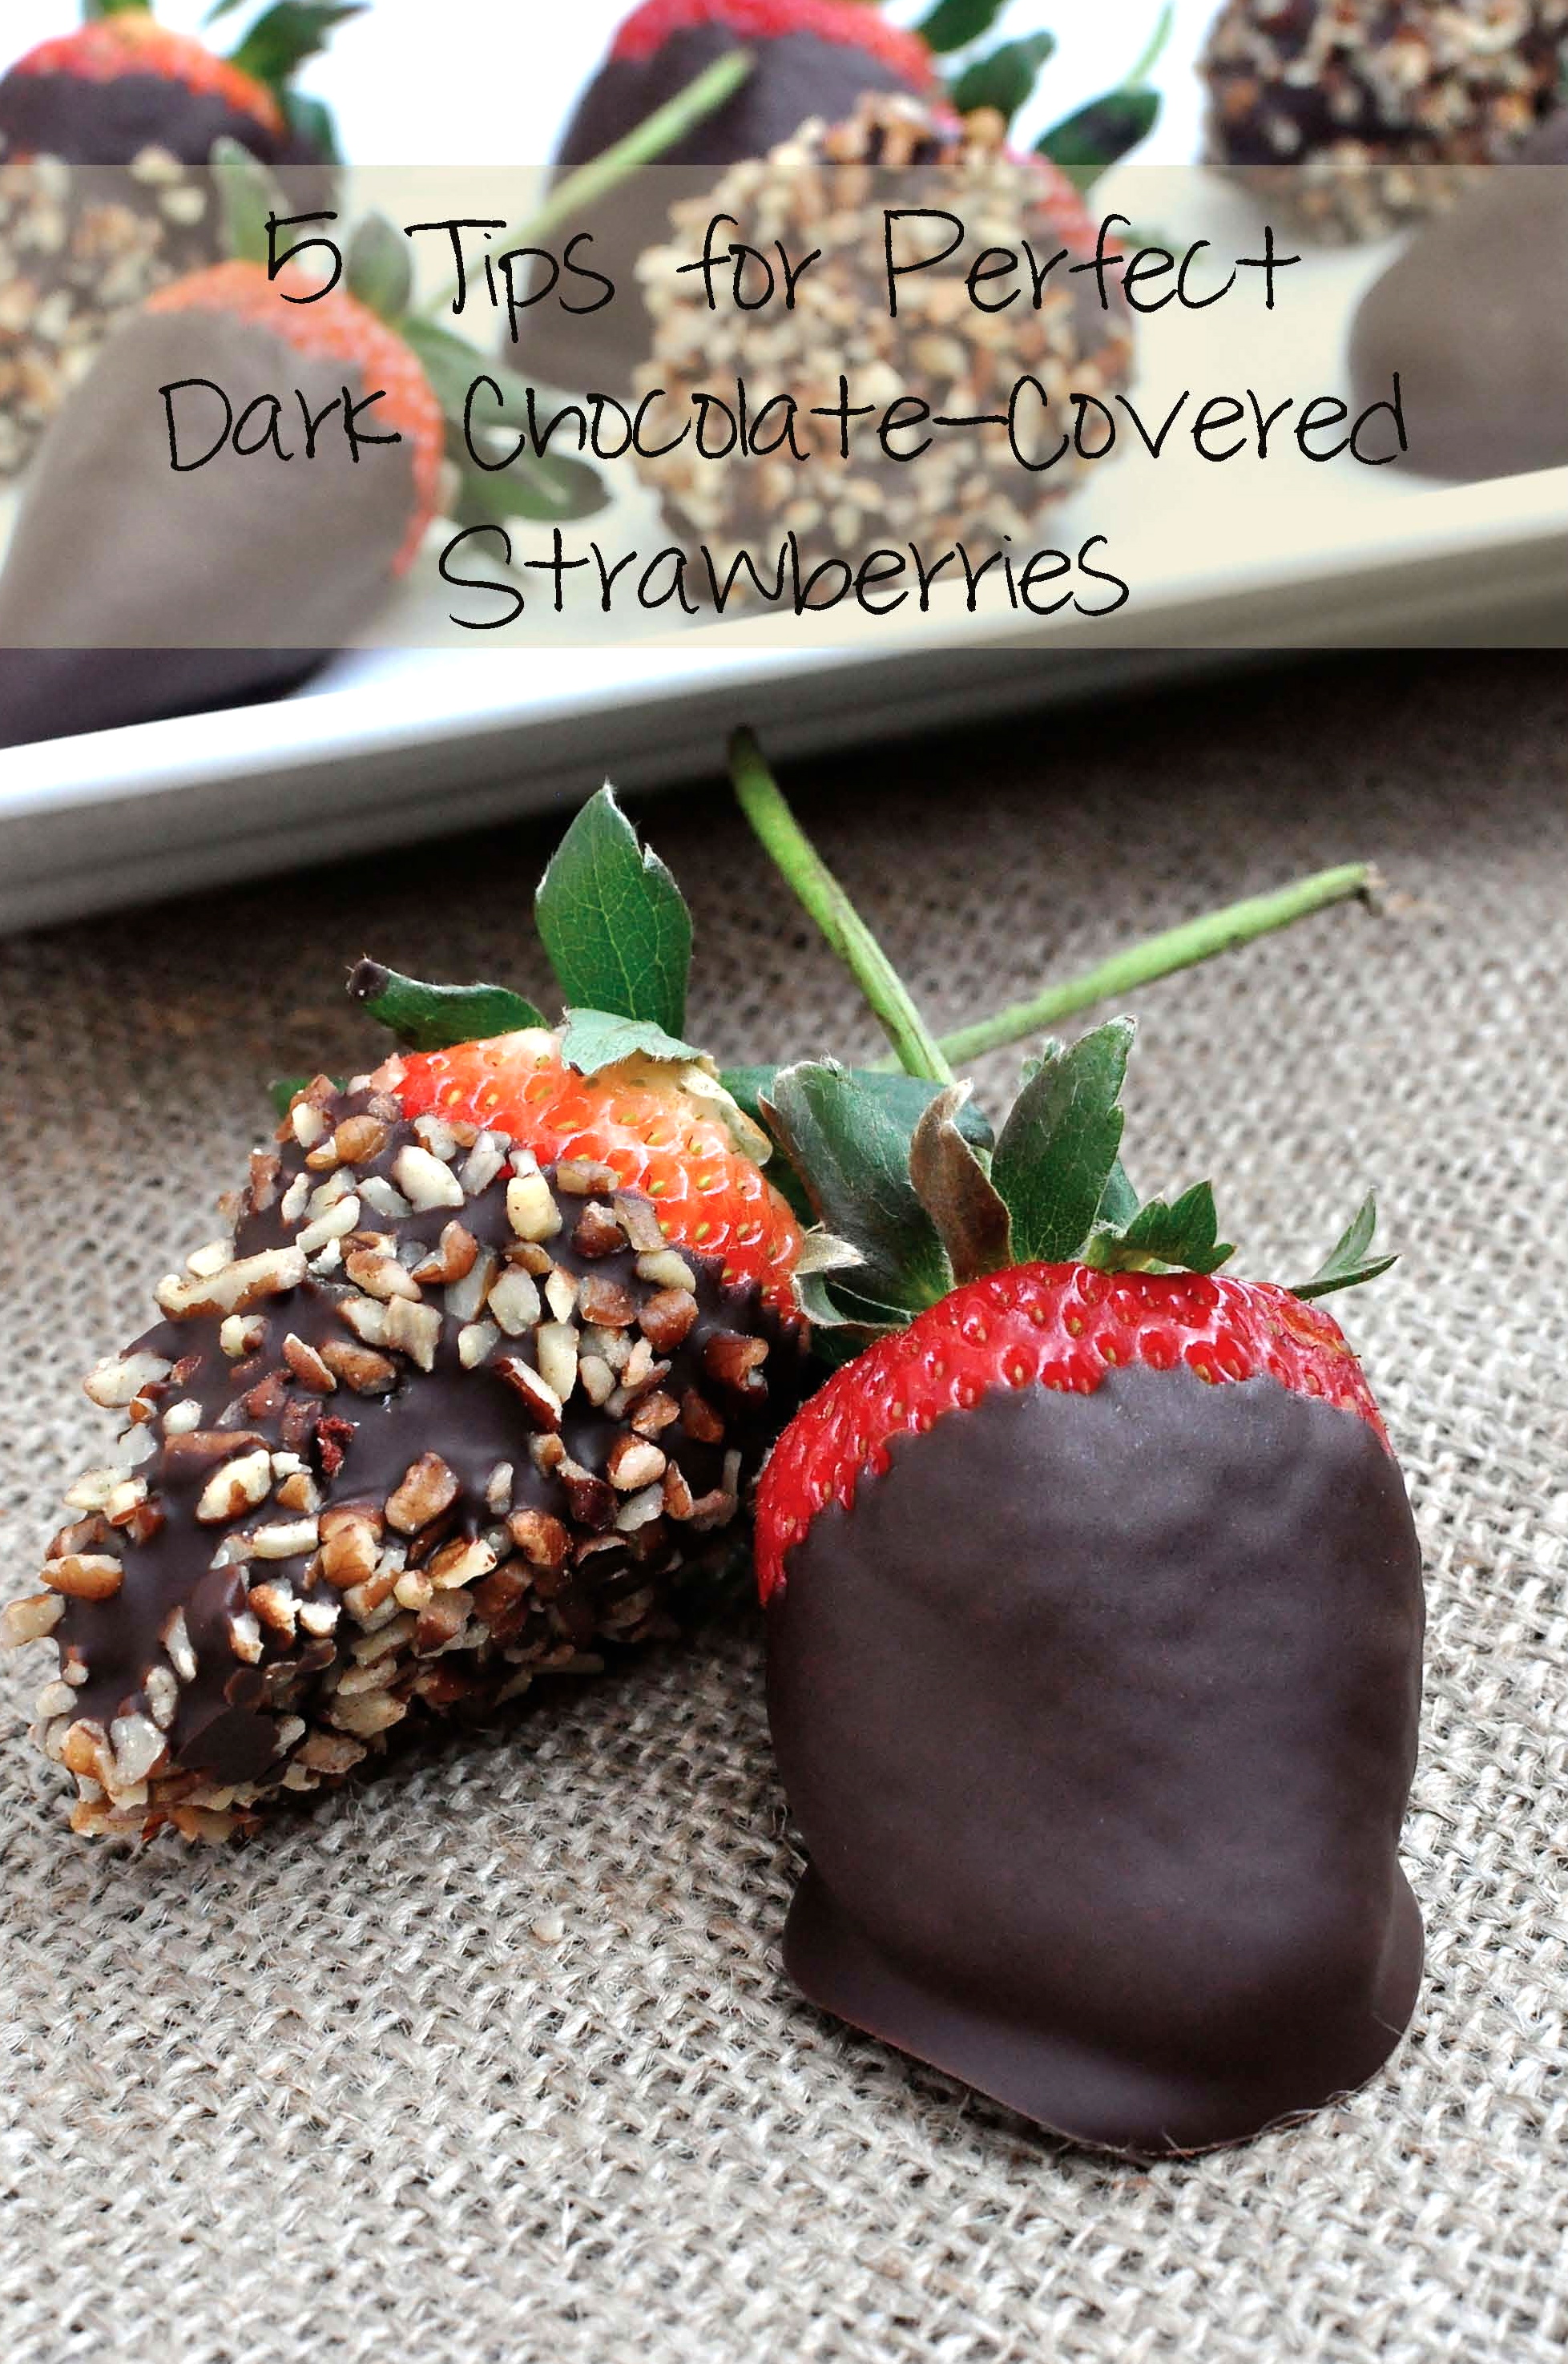 How To Melt Dark Chocolate For Strawberries